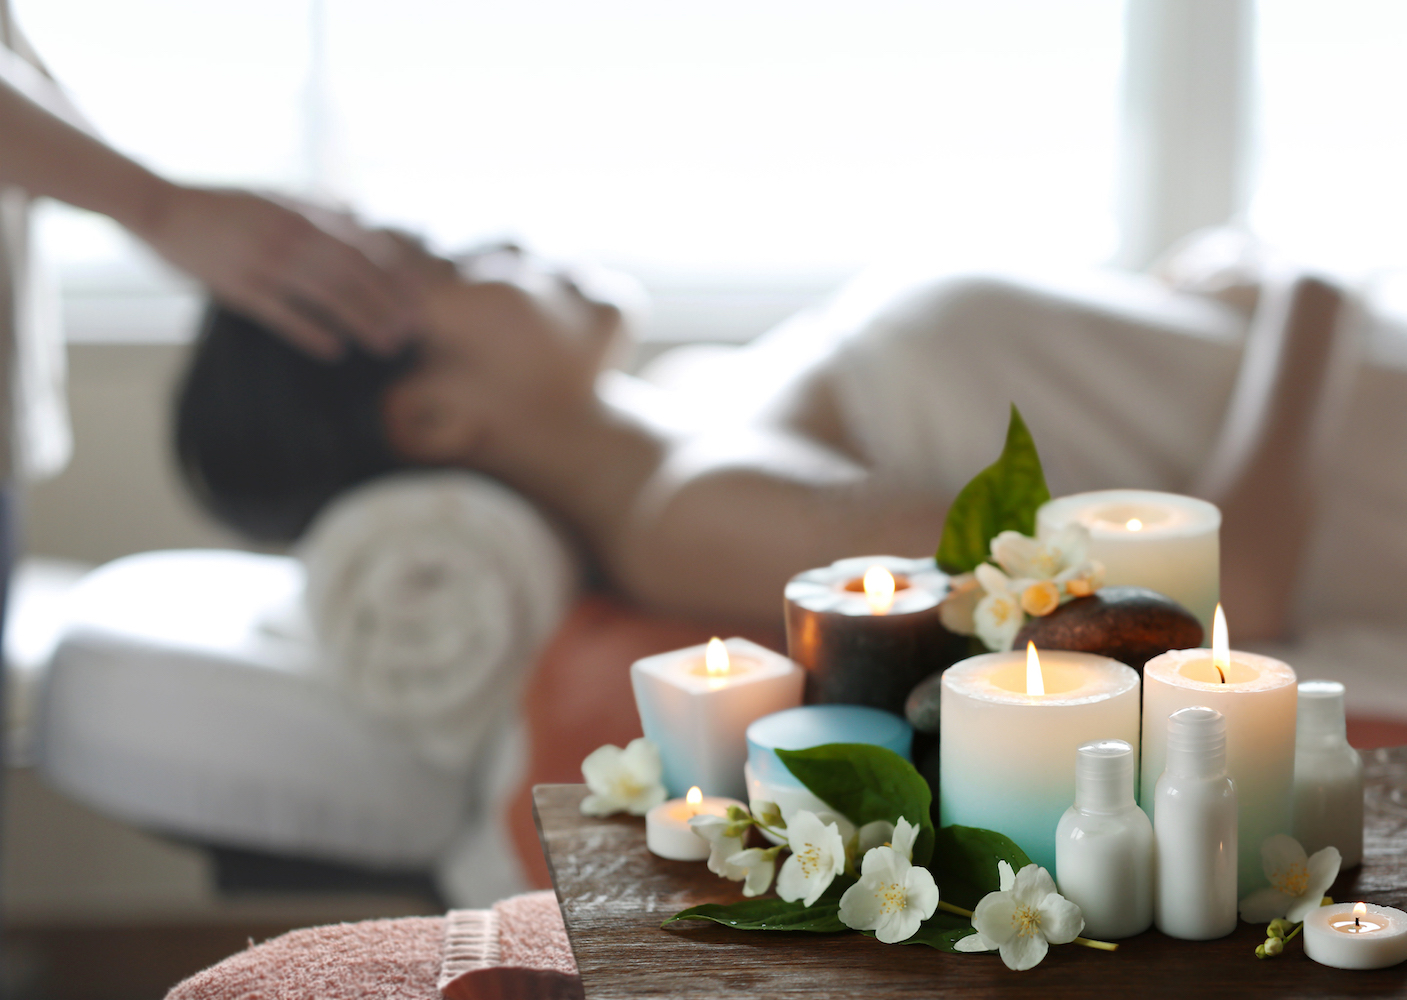 mothers-day-gift-ideas-A-Sense-of-Care_CHI-The-Spa_Mothers-Day-2019_Shangri-La-Hotel-Bangkok